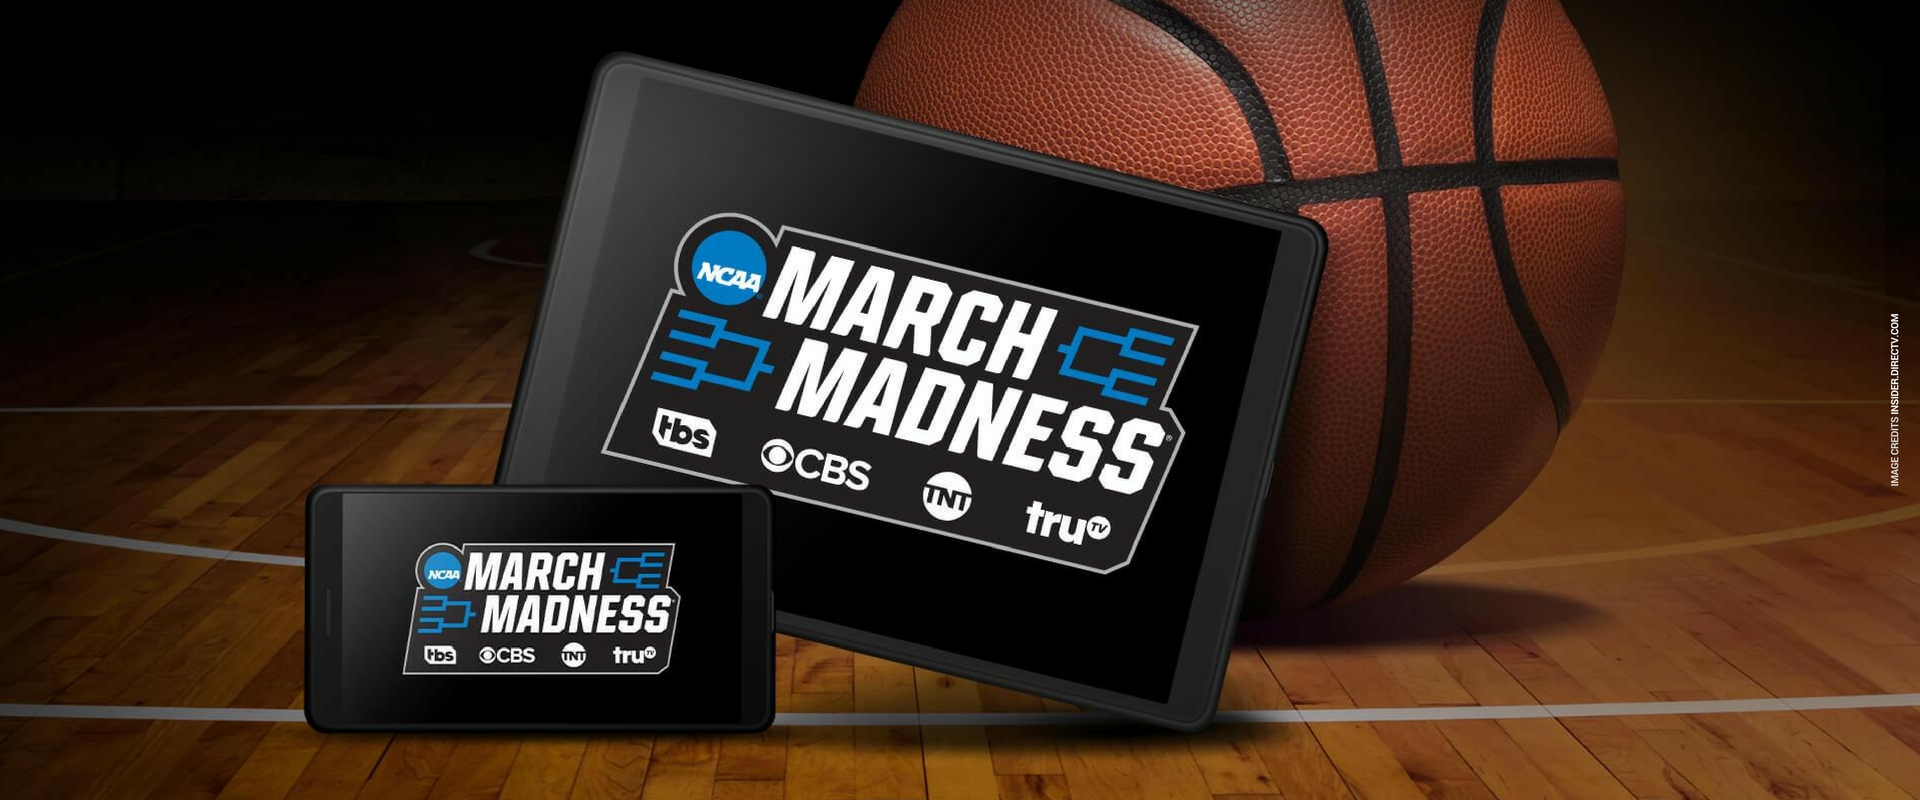 march madness live app mobile